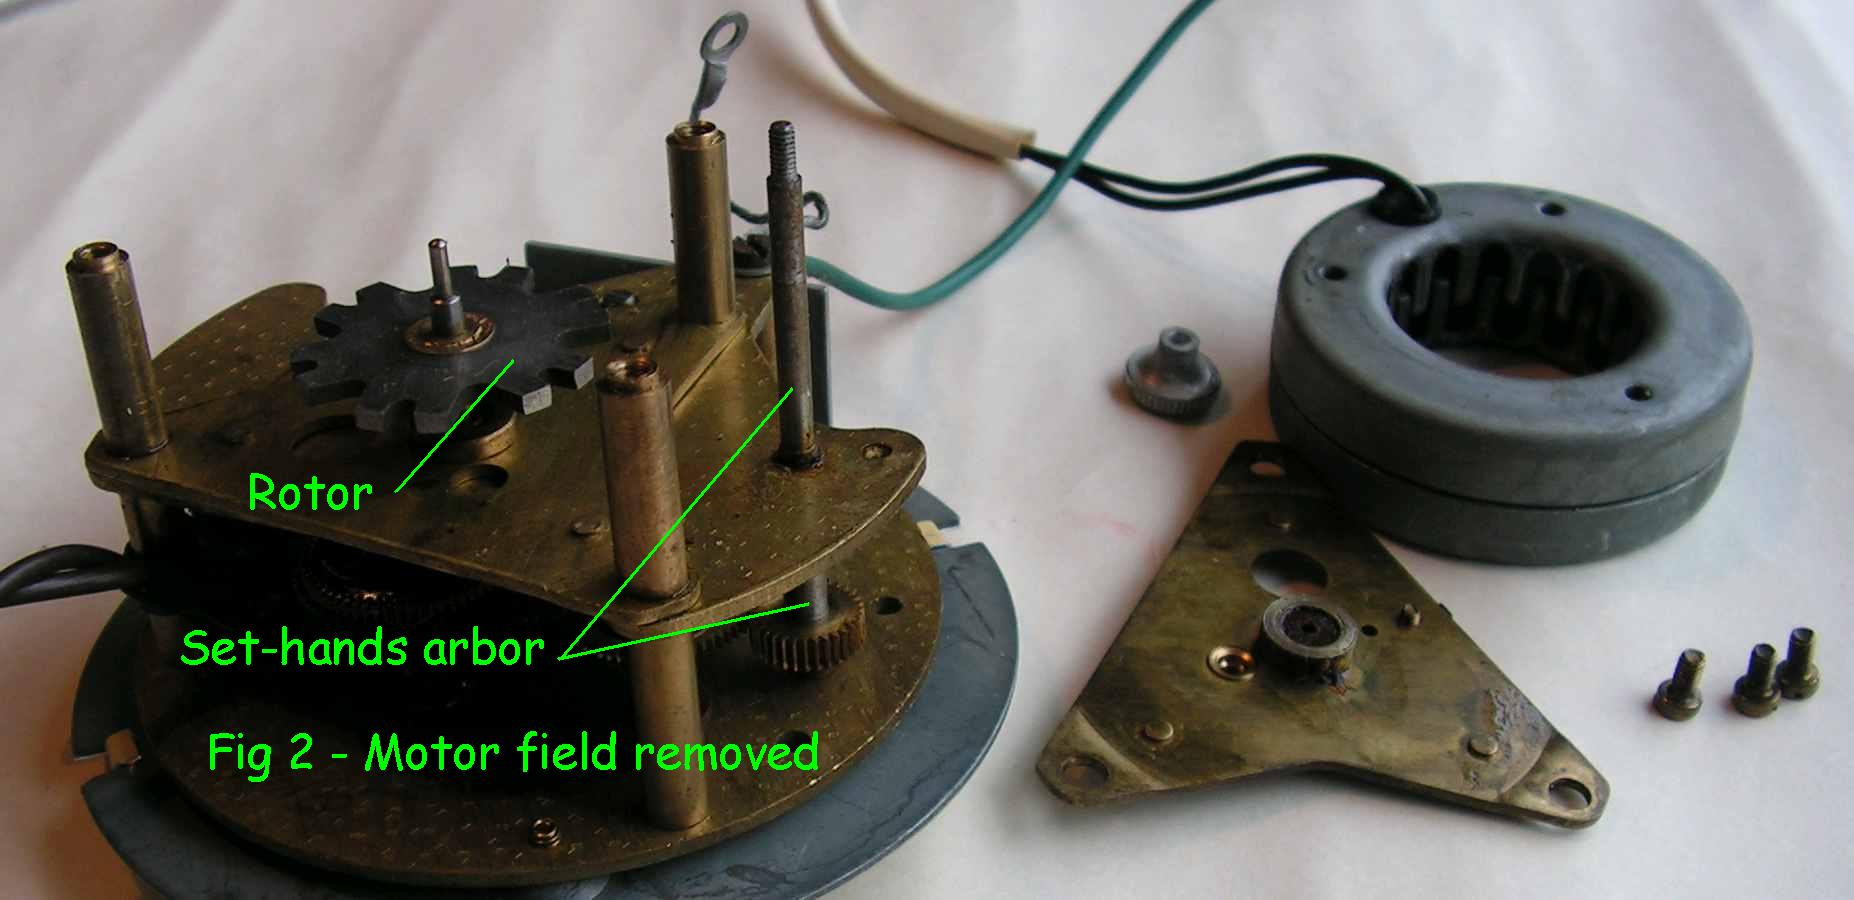 Fig 2 - motor field removed